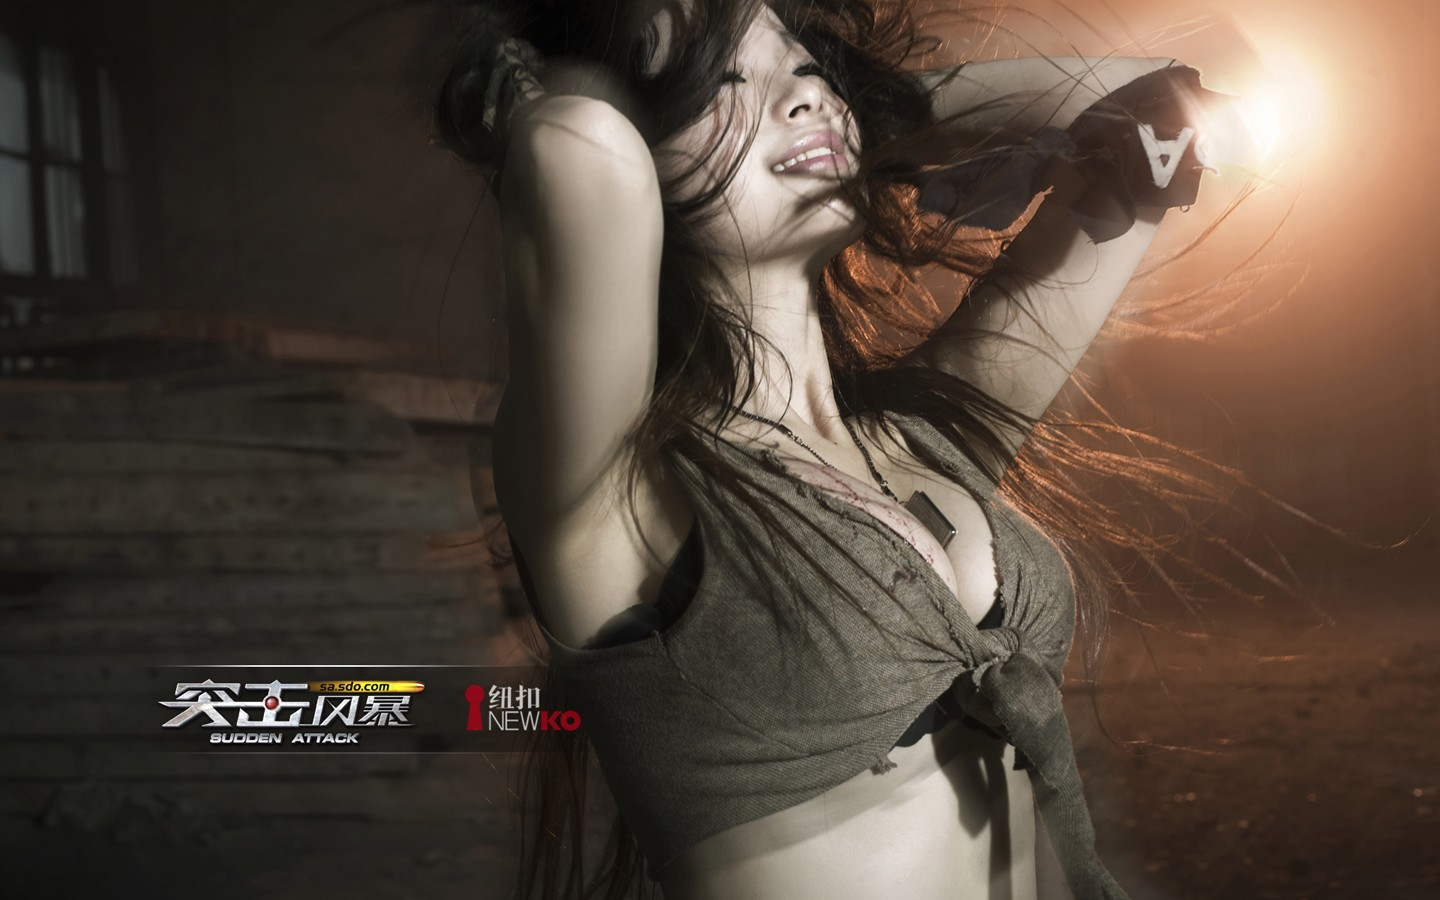 Static Movie Wallpaper Surprise Storm - Sudden Attack , HD Wallpaper & Backgrounds